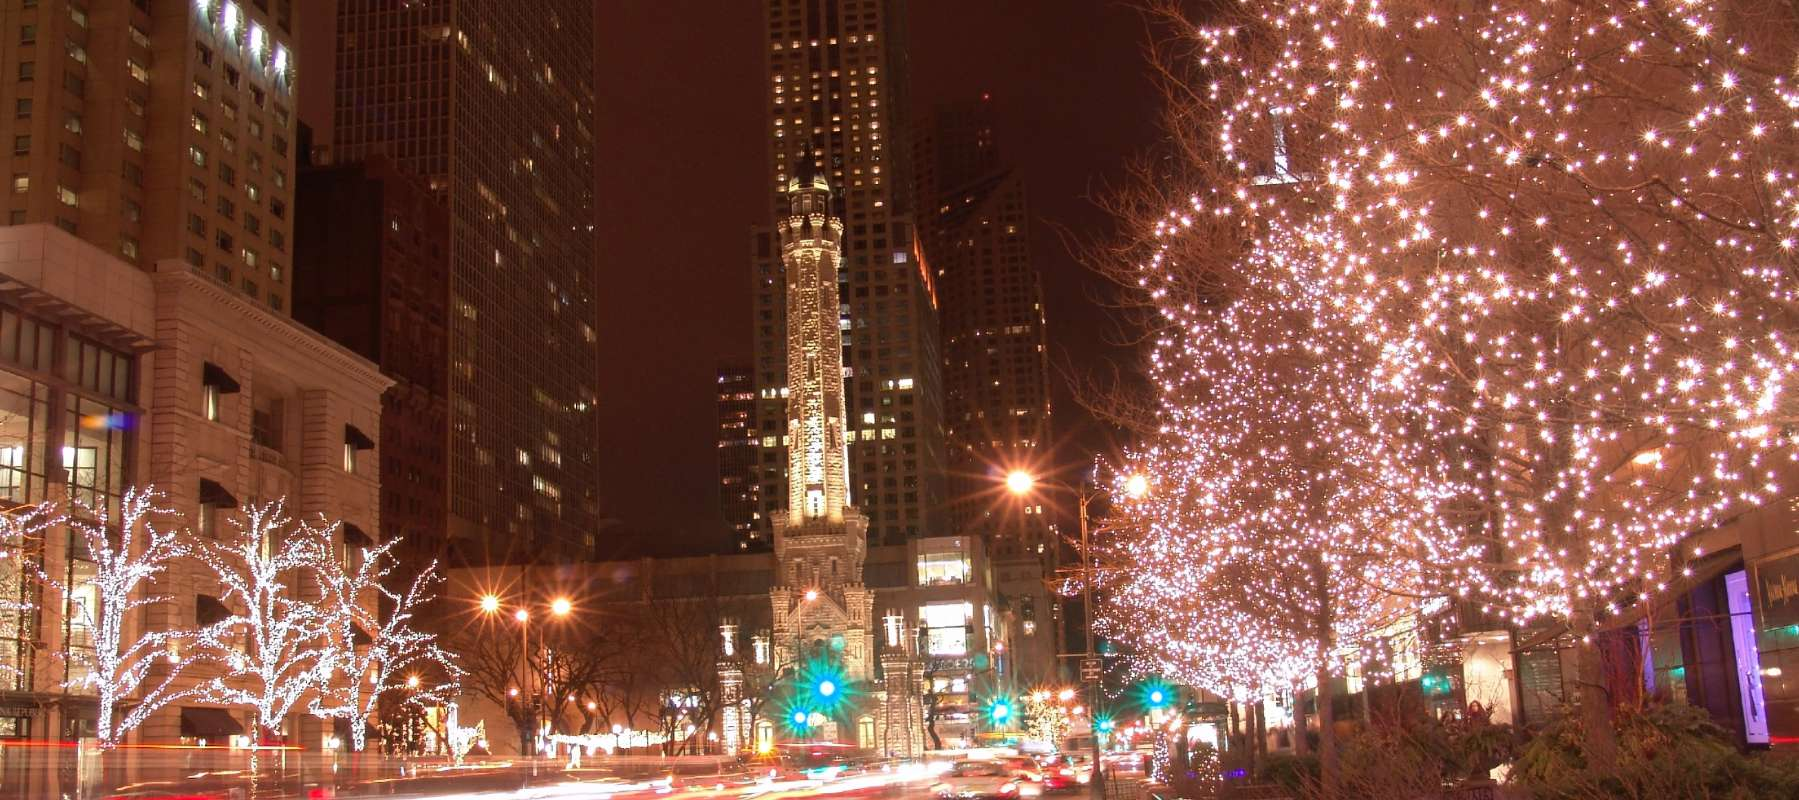 Lights Festival   Chicago Event   The Magnificent Mile